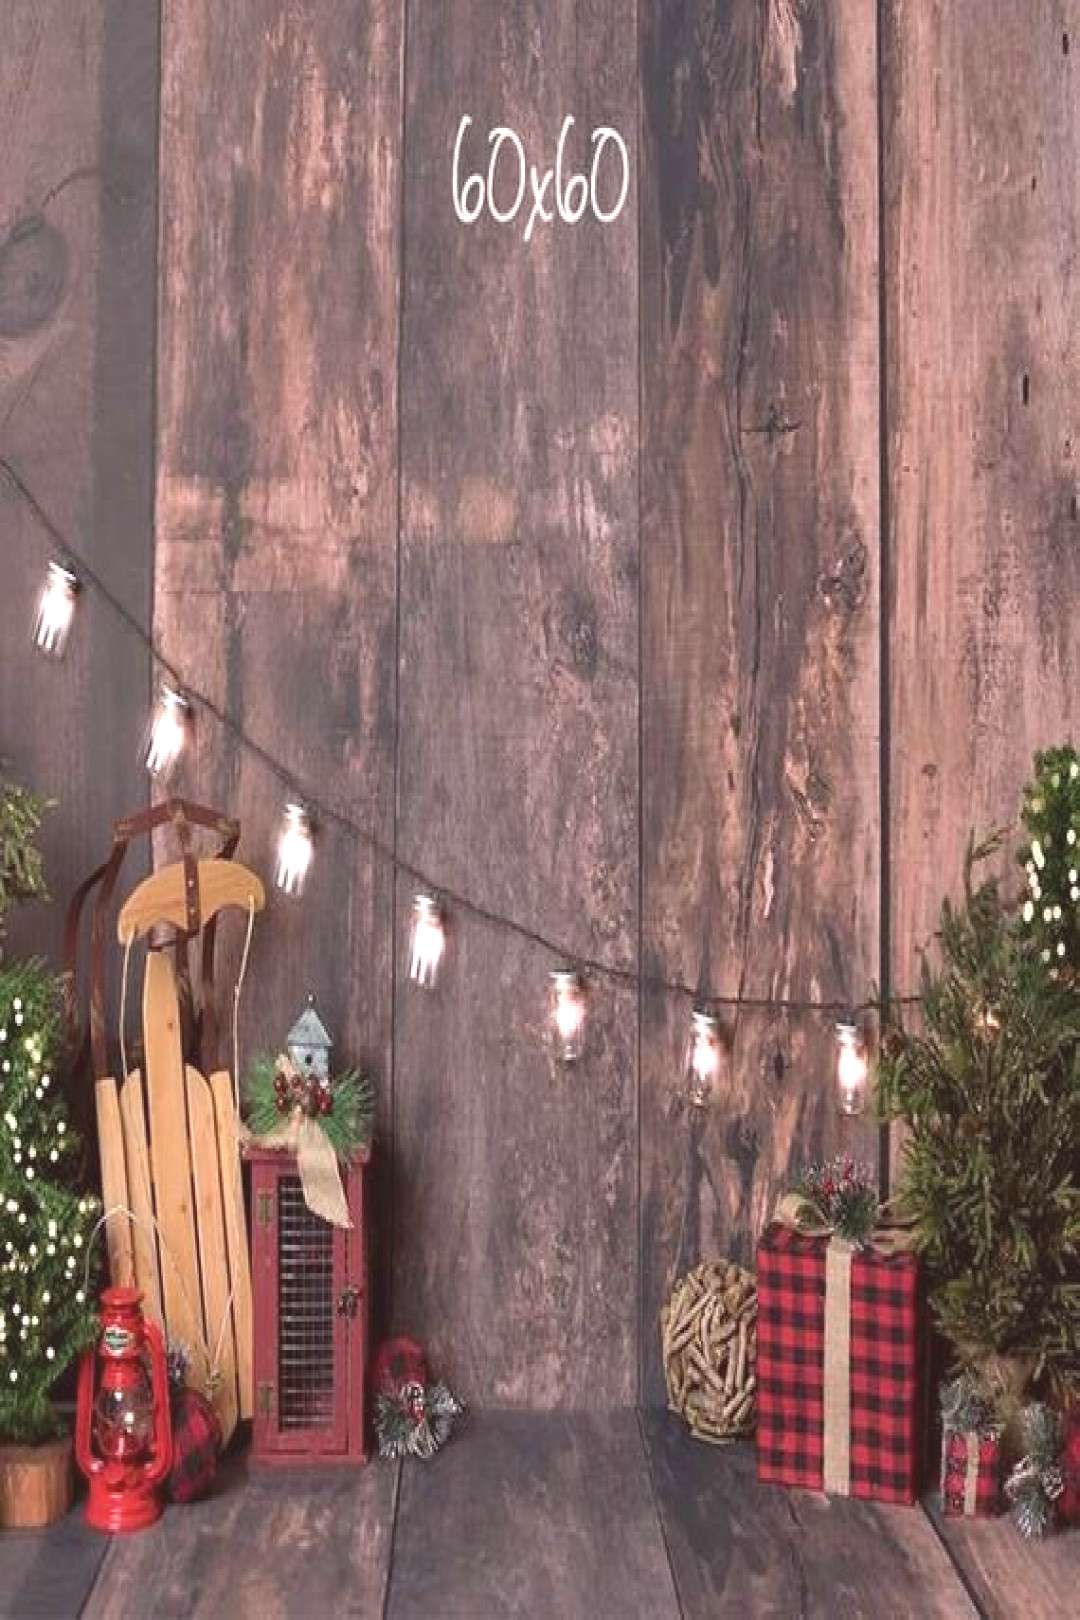 Rustic Glimmer Holiday Photography Backdrop Christmas   Etsy